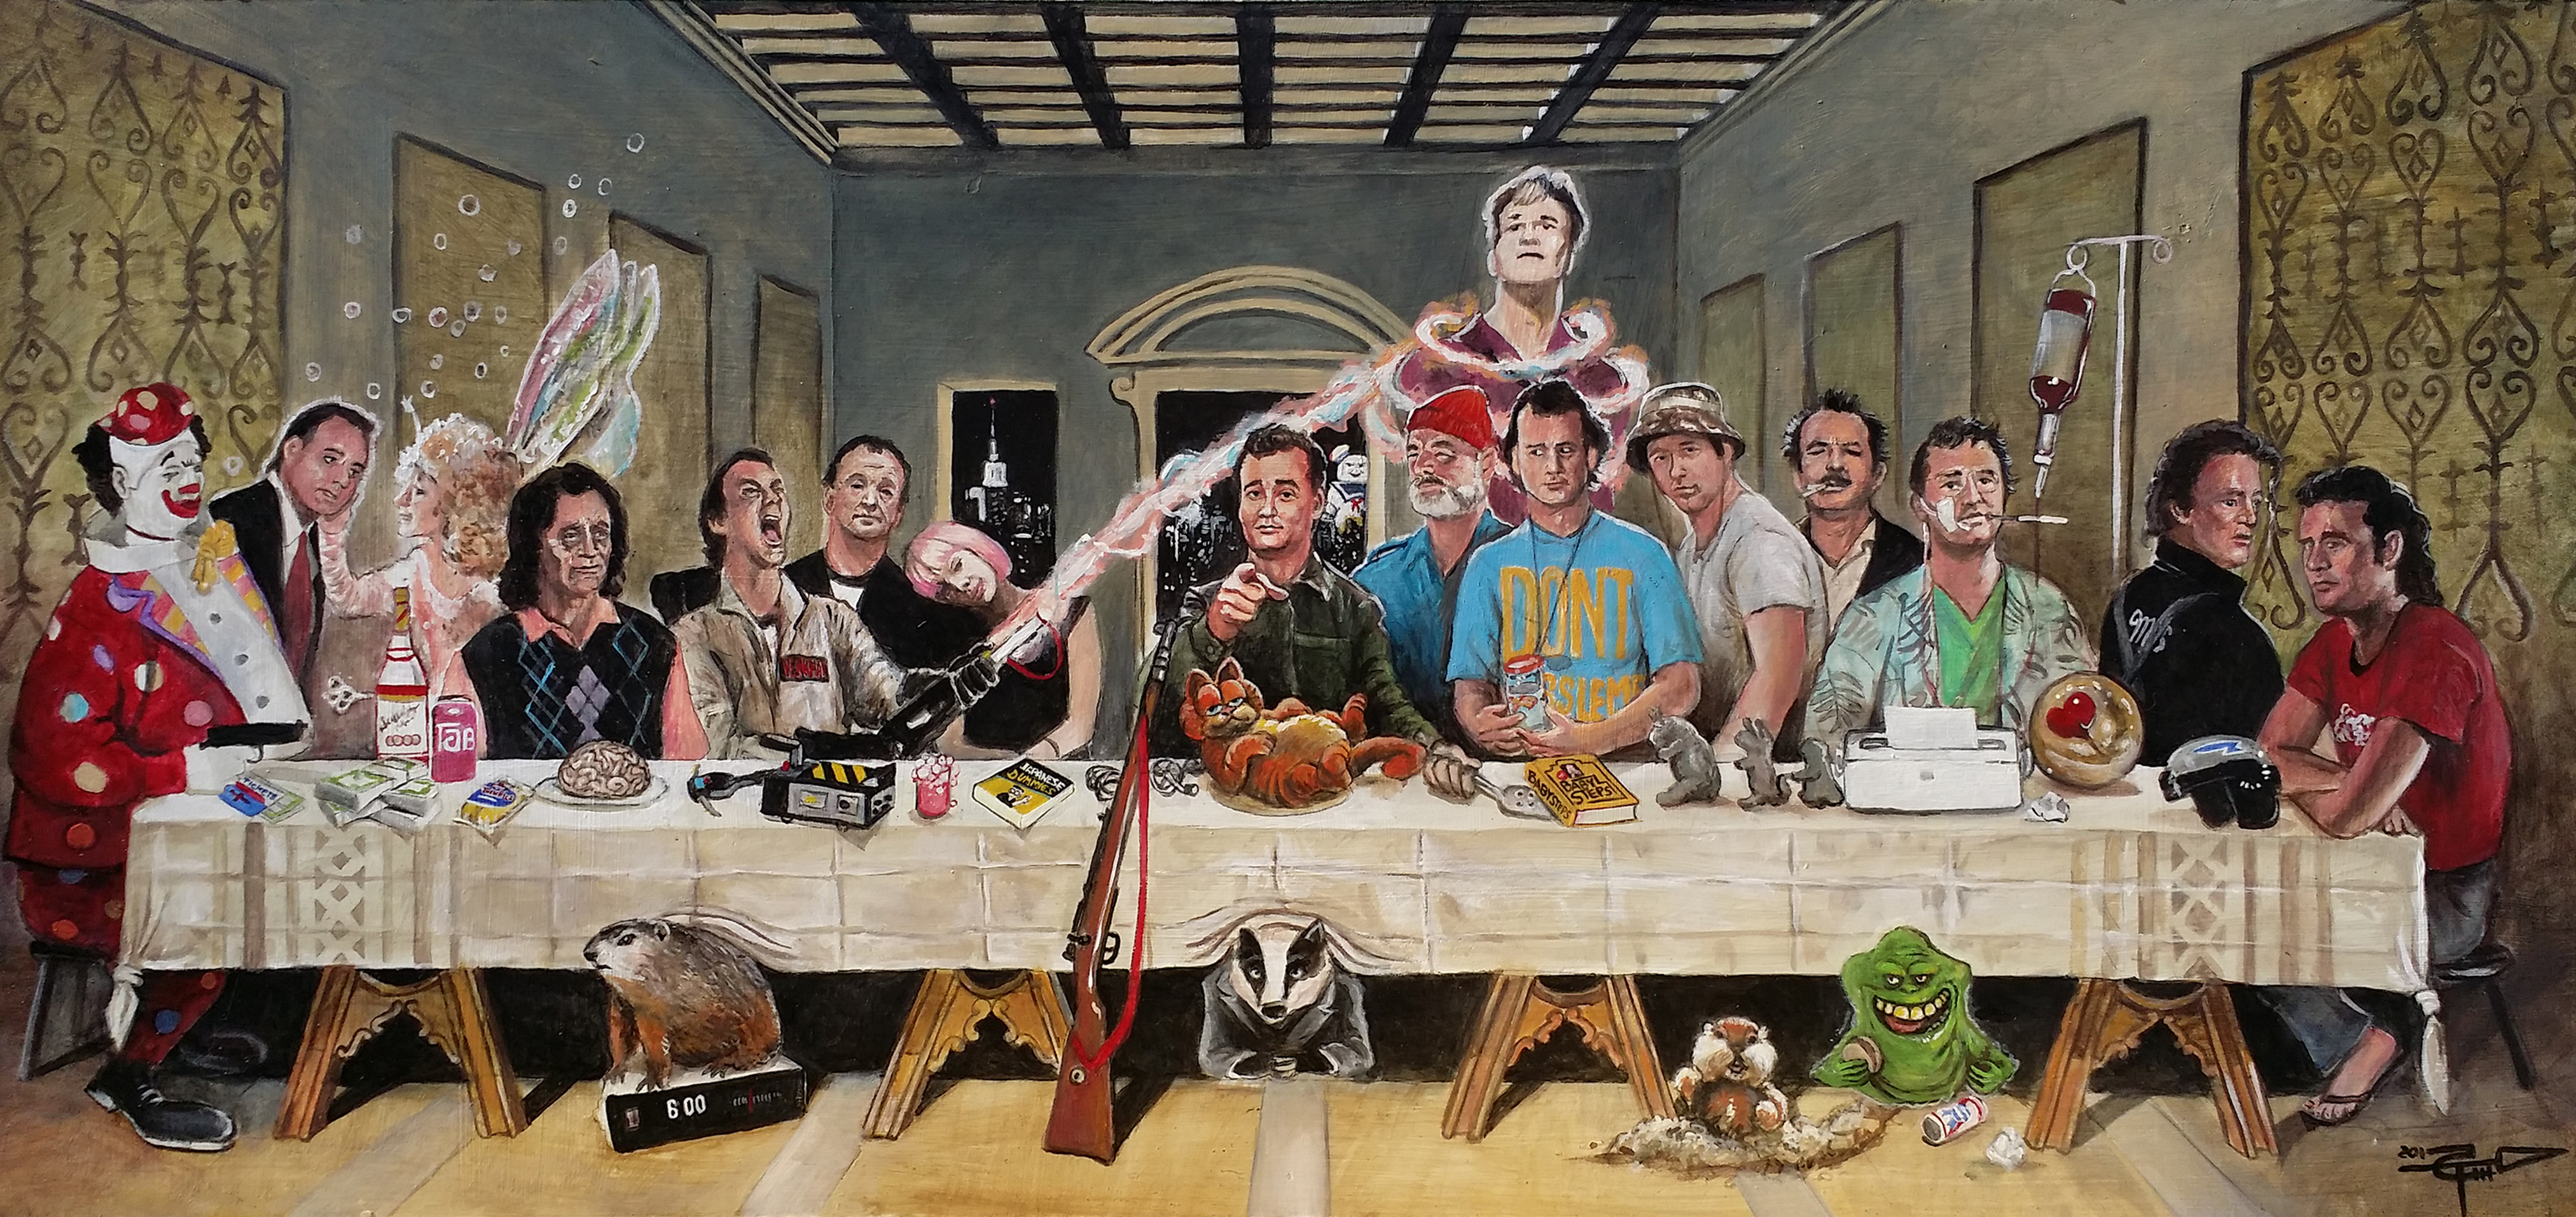 Store Banne Ultima Bill 39s Last Supper Tom Carlton Art Online Store